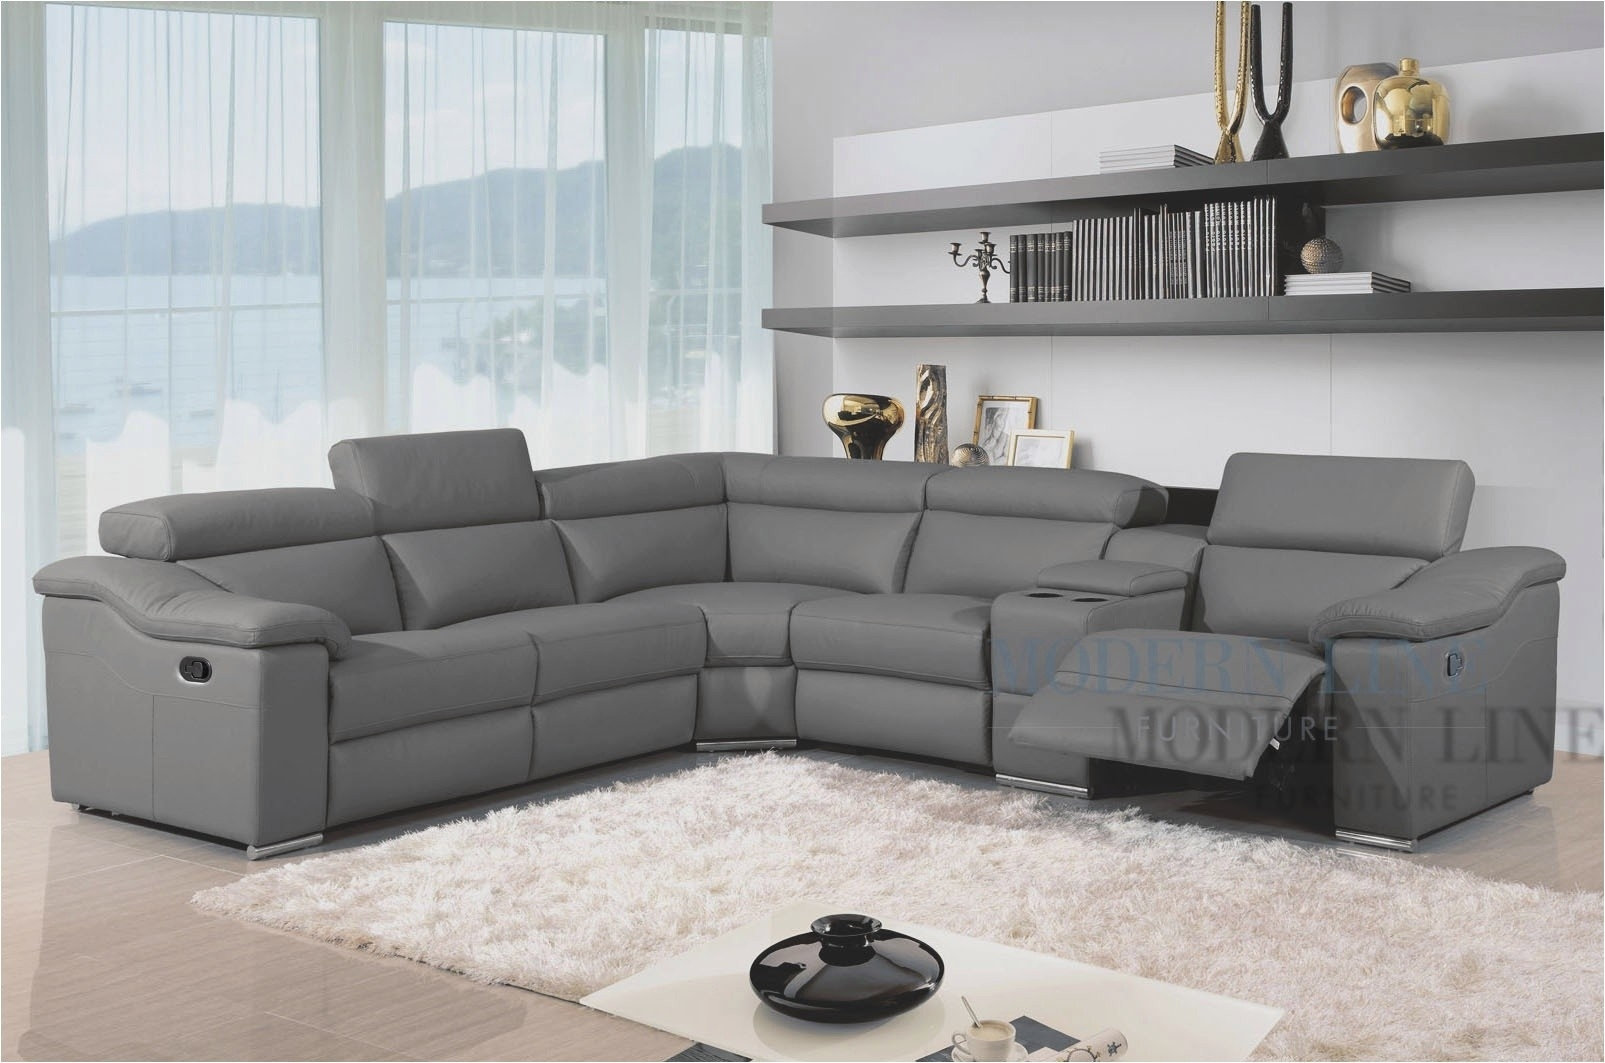 Grey Leather Reclining Sectional Clyde 3 Piece Power W Pwr Hdrst For Clyde Grey Leather 3 Piece Power Reclining Sectionals With Pwr Hdrst & Usb (View 8 of 30)